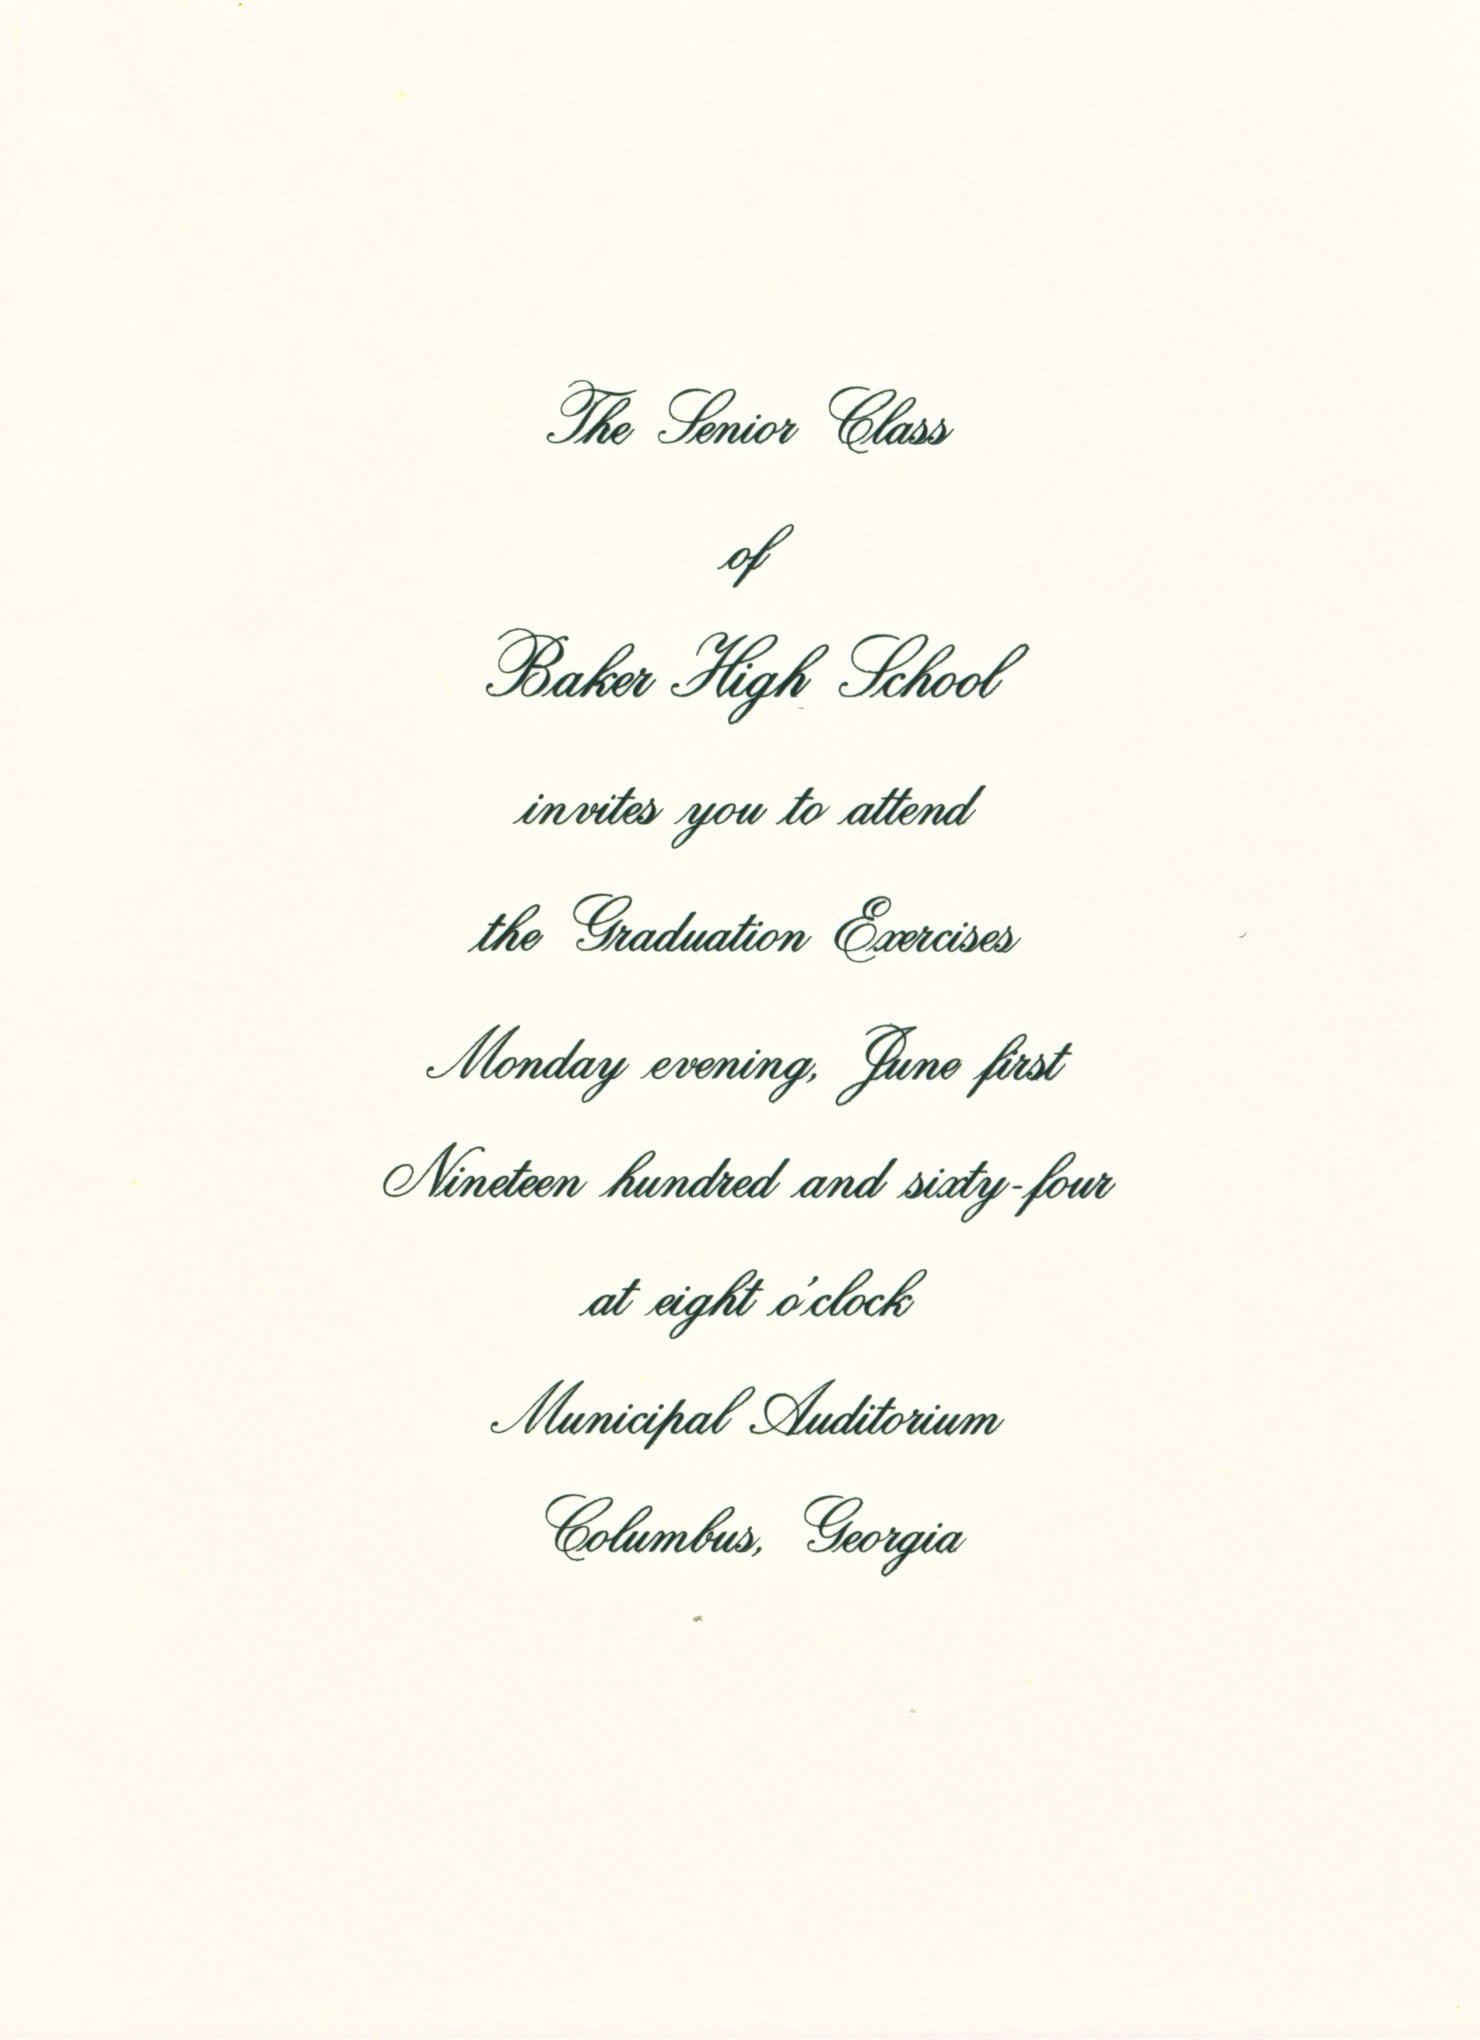 Sample Letter Of Invitation For Graduation Ceremony as beautiful invitation example